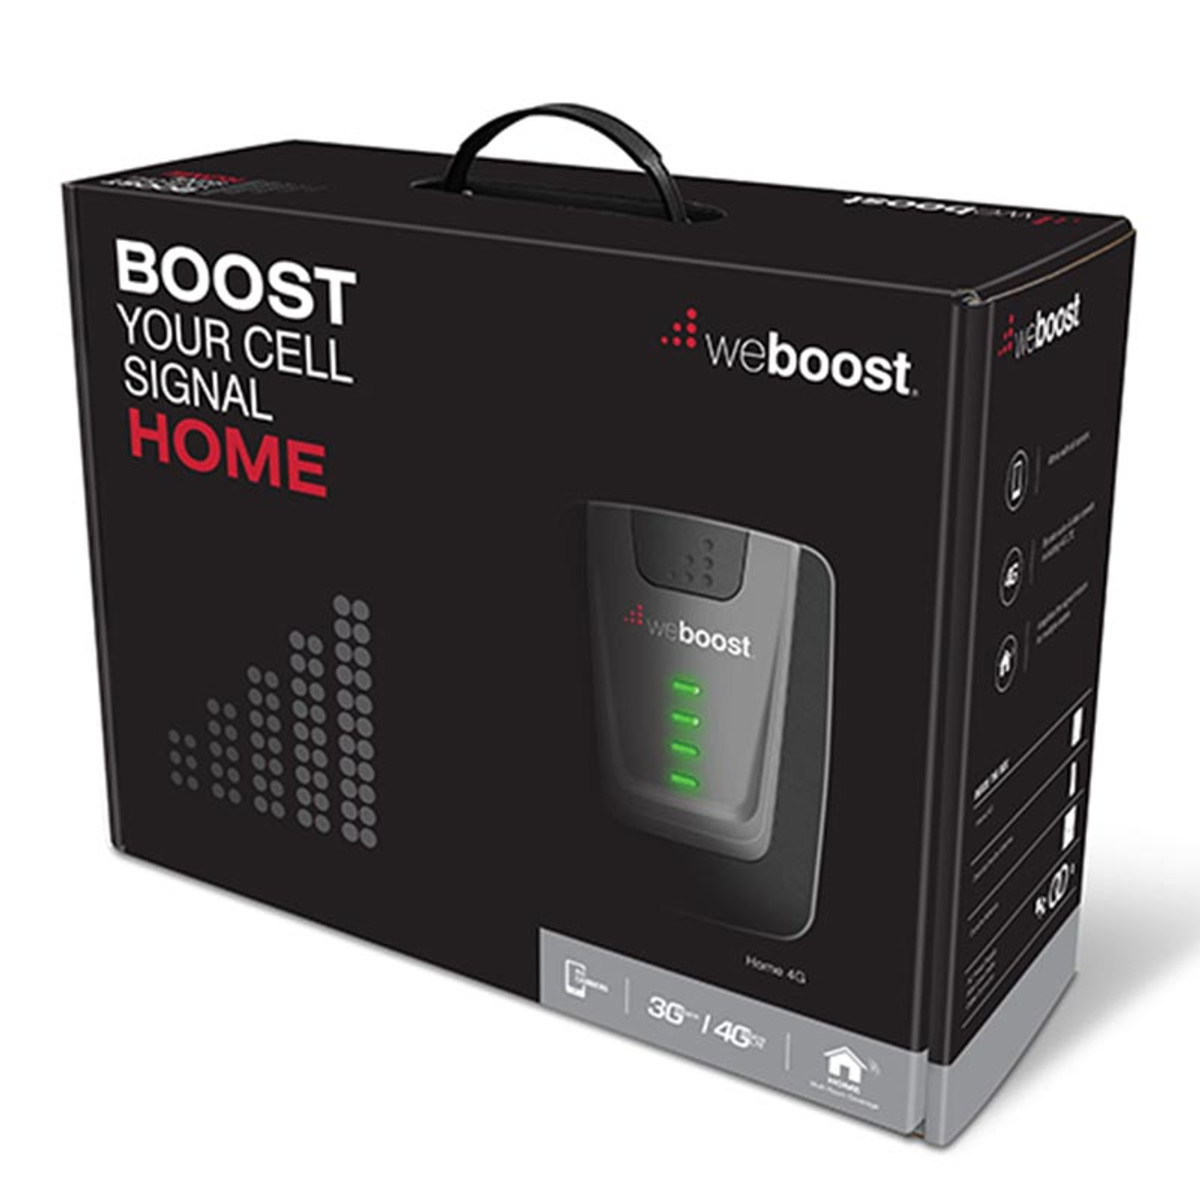 weBoost Home 4G Cell Phone Signal Booster | 470101 - Box